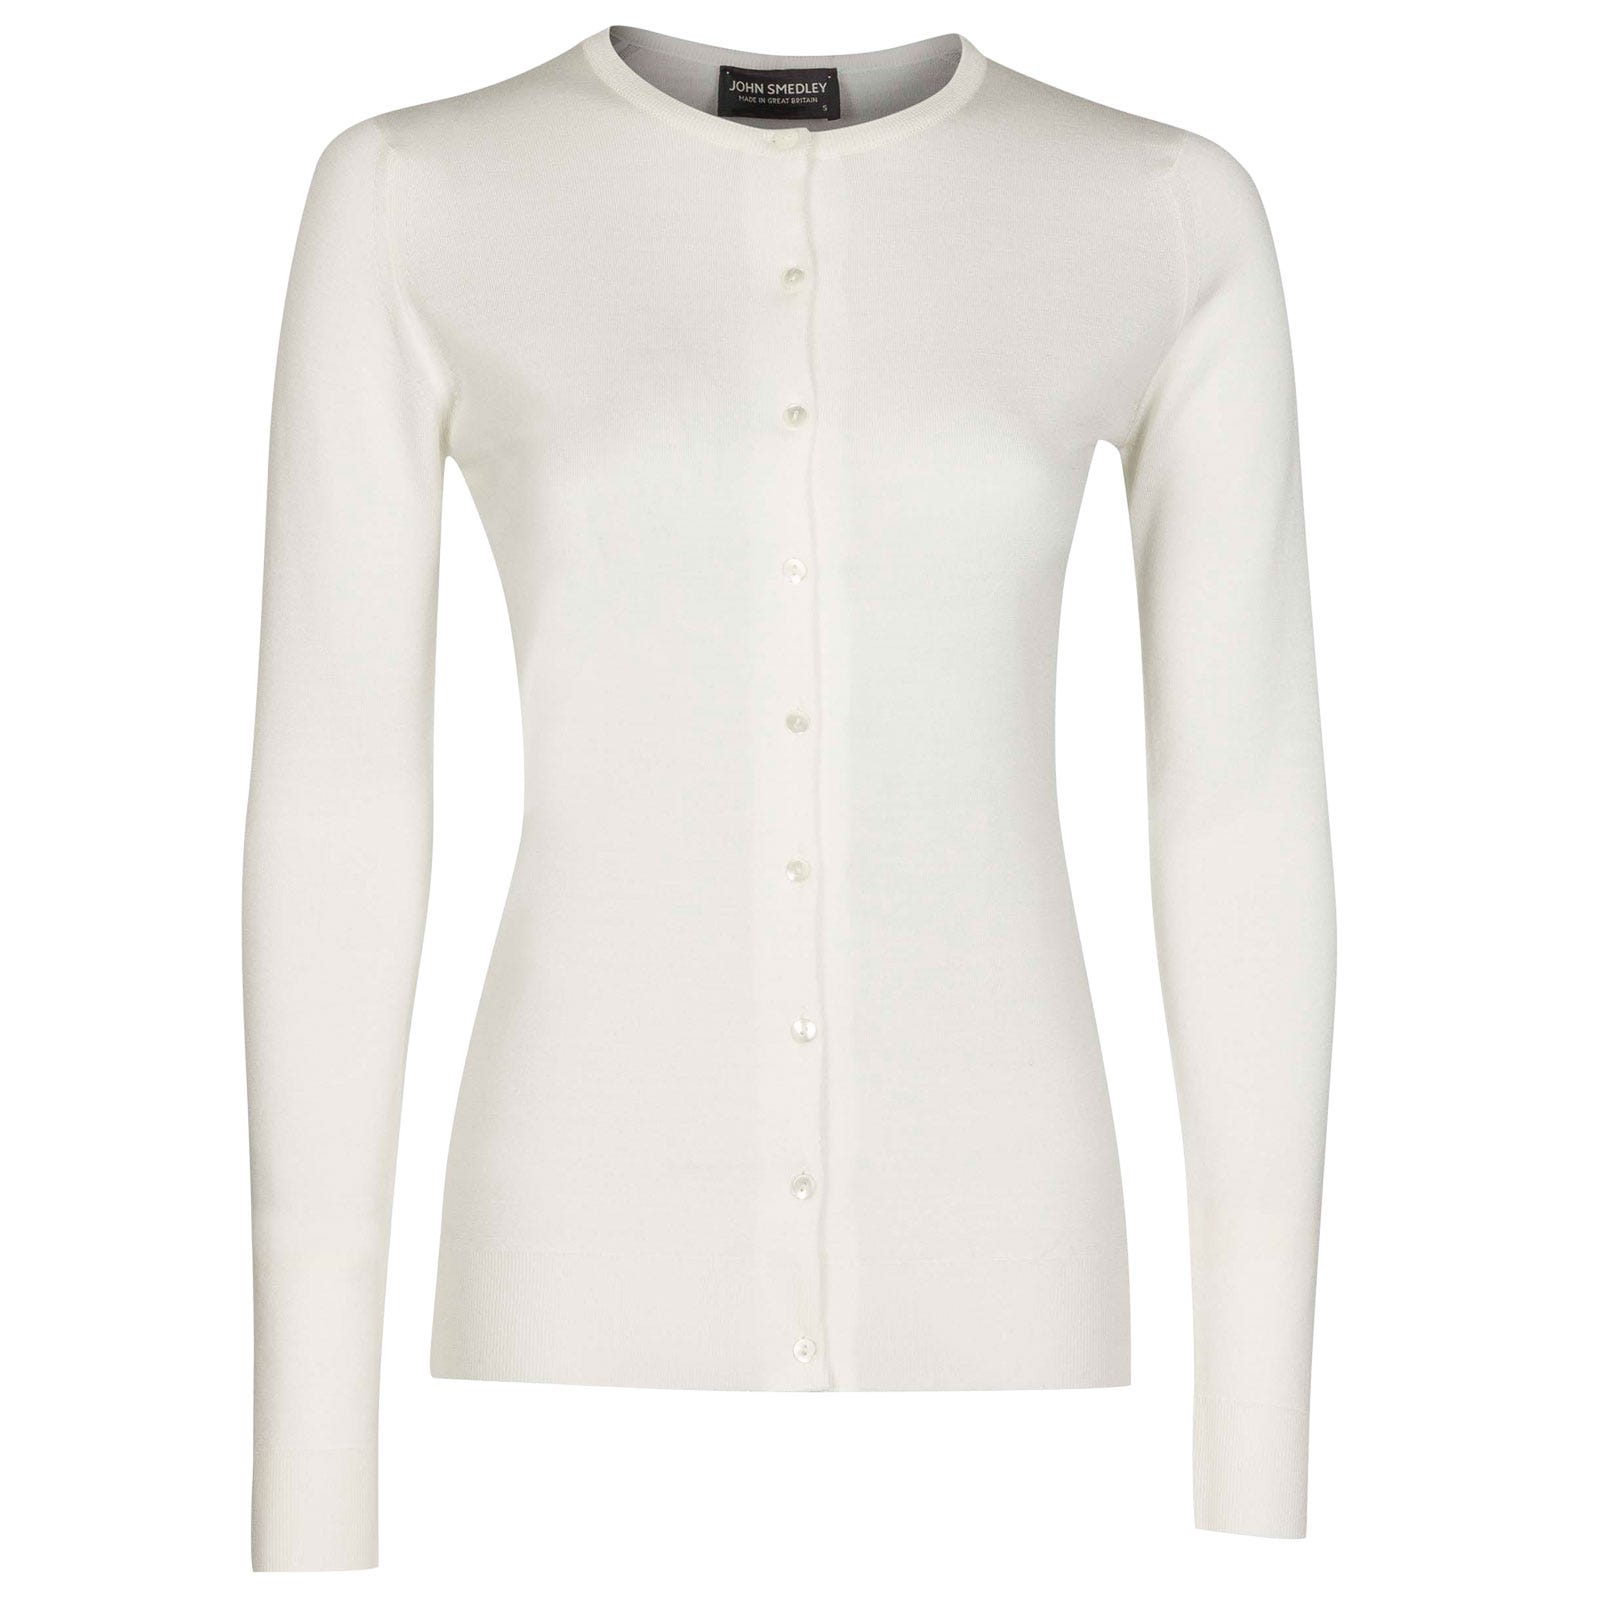 John Smedley Buttercup Merino Wool Cardigan in Snow White-XL